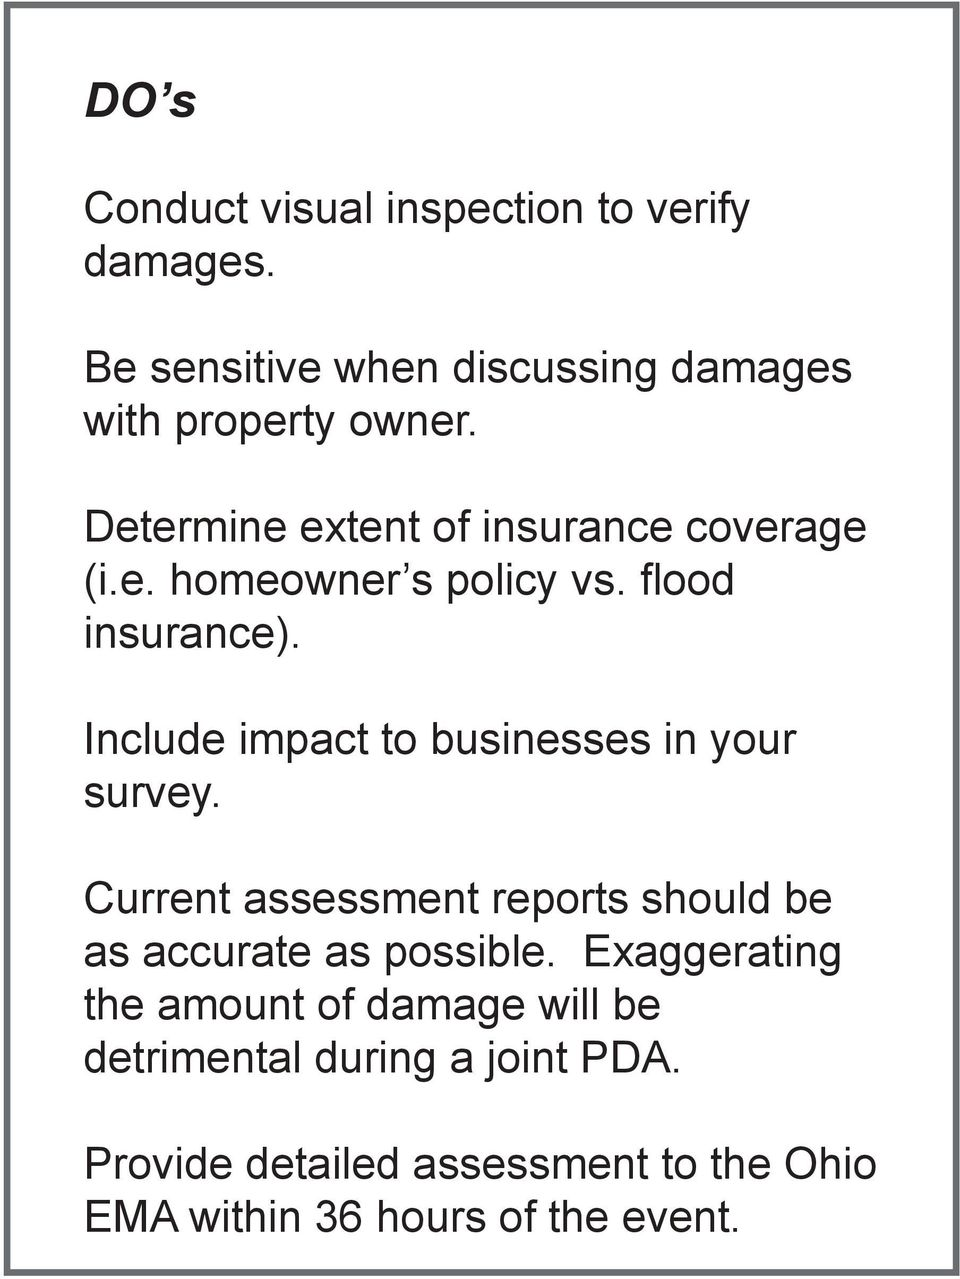 Include impact to businesses in your survey. Current assessment reports should be as accurate as possible.